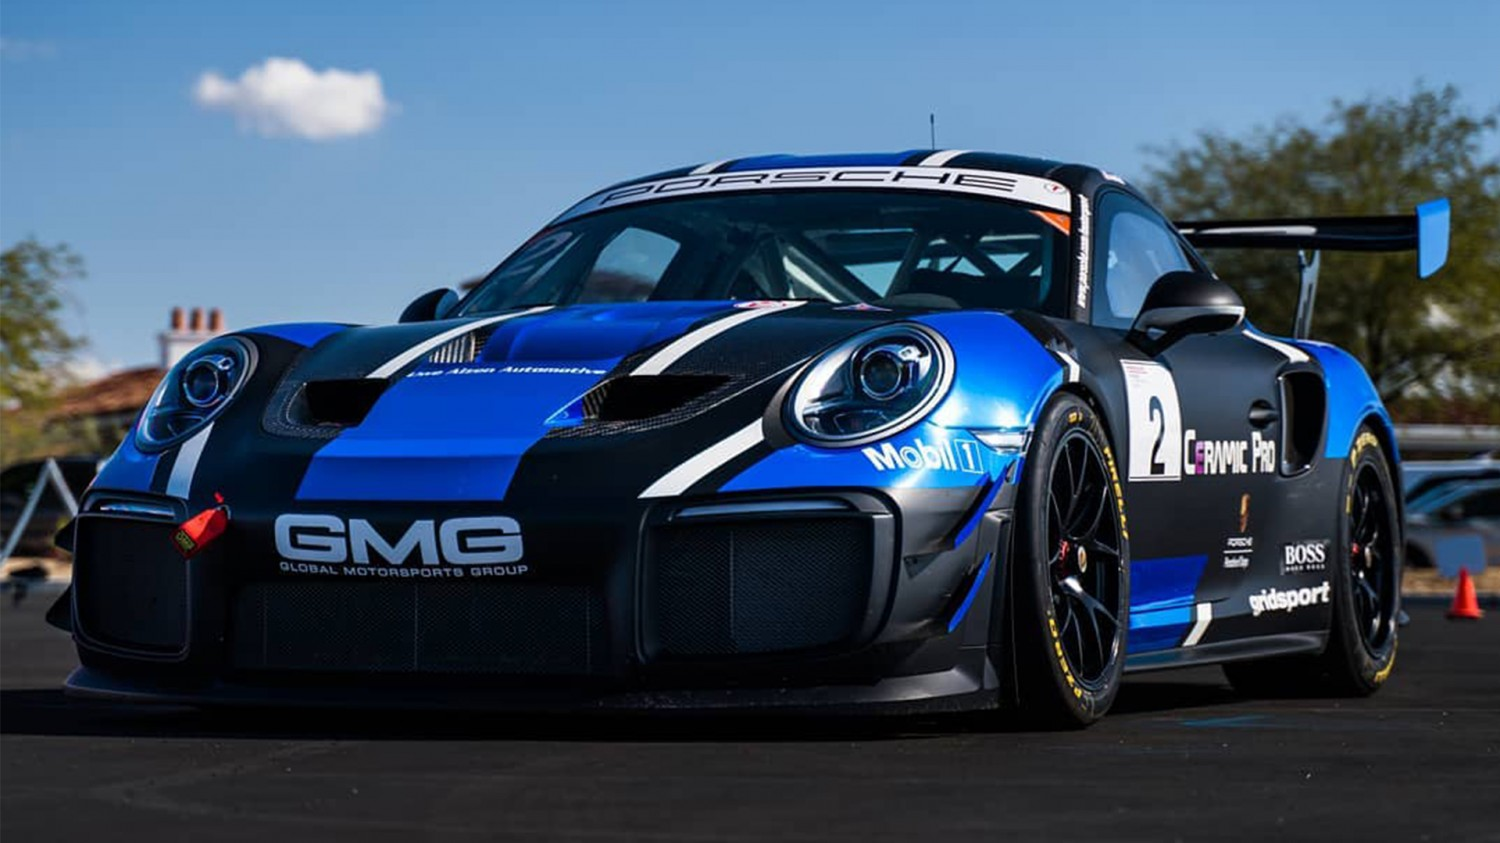 GMG Racing's Jason Bell Confirms GT4 SprintX with Andrew Davis and GT2 for Upcoming Season